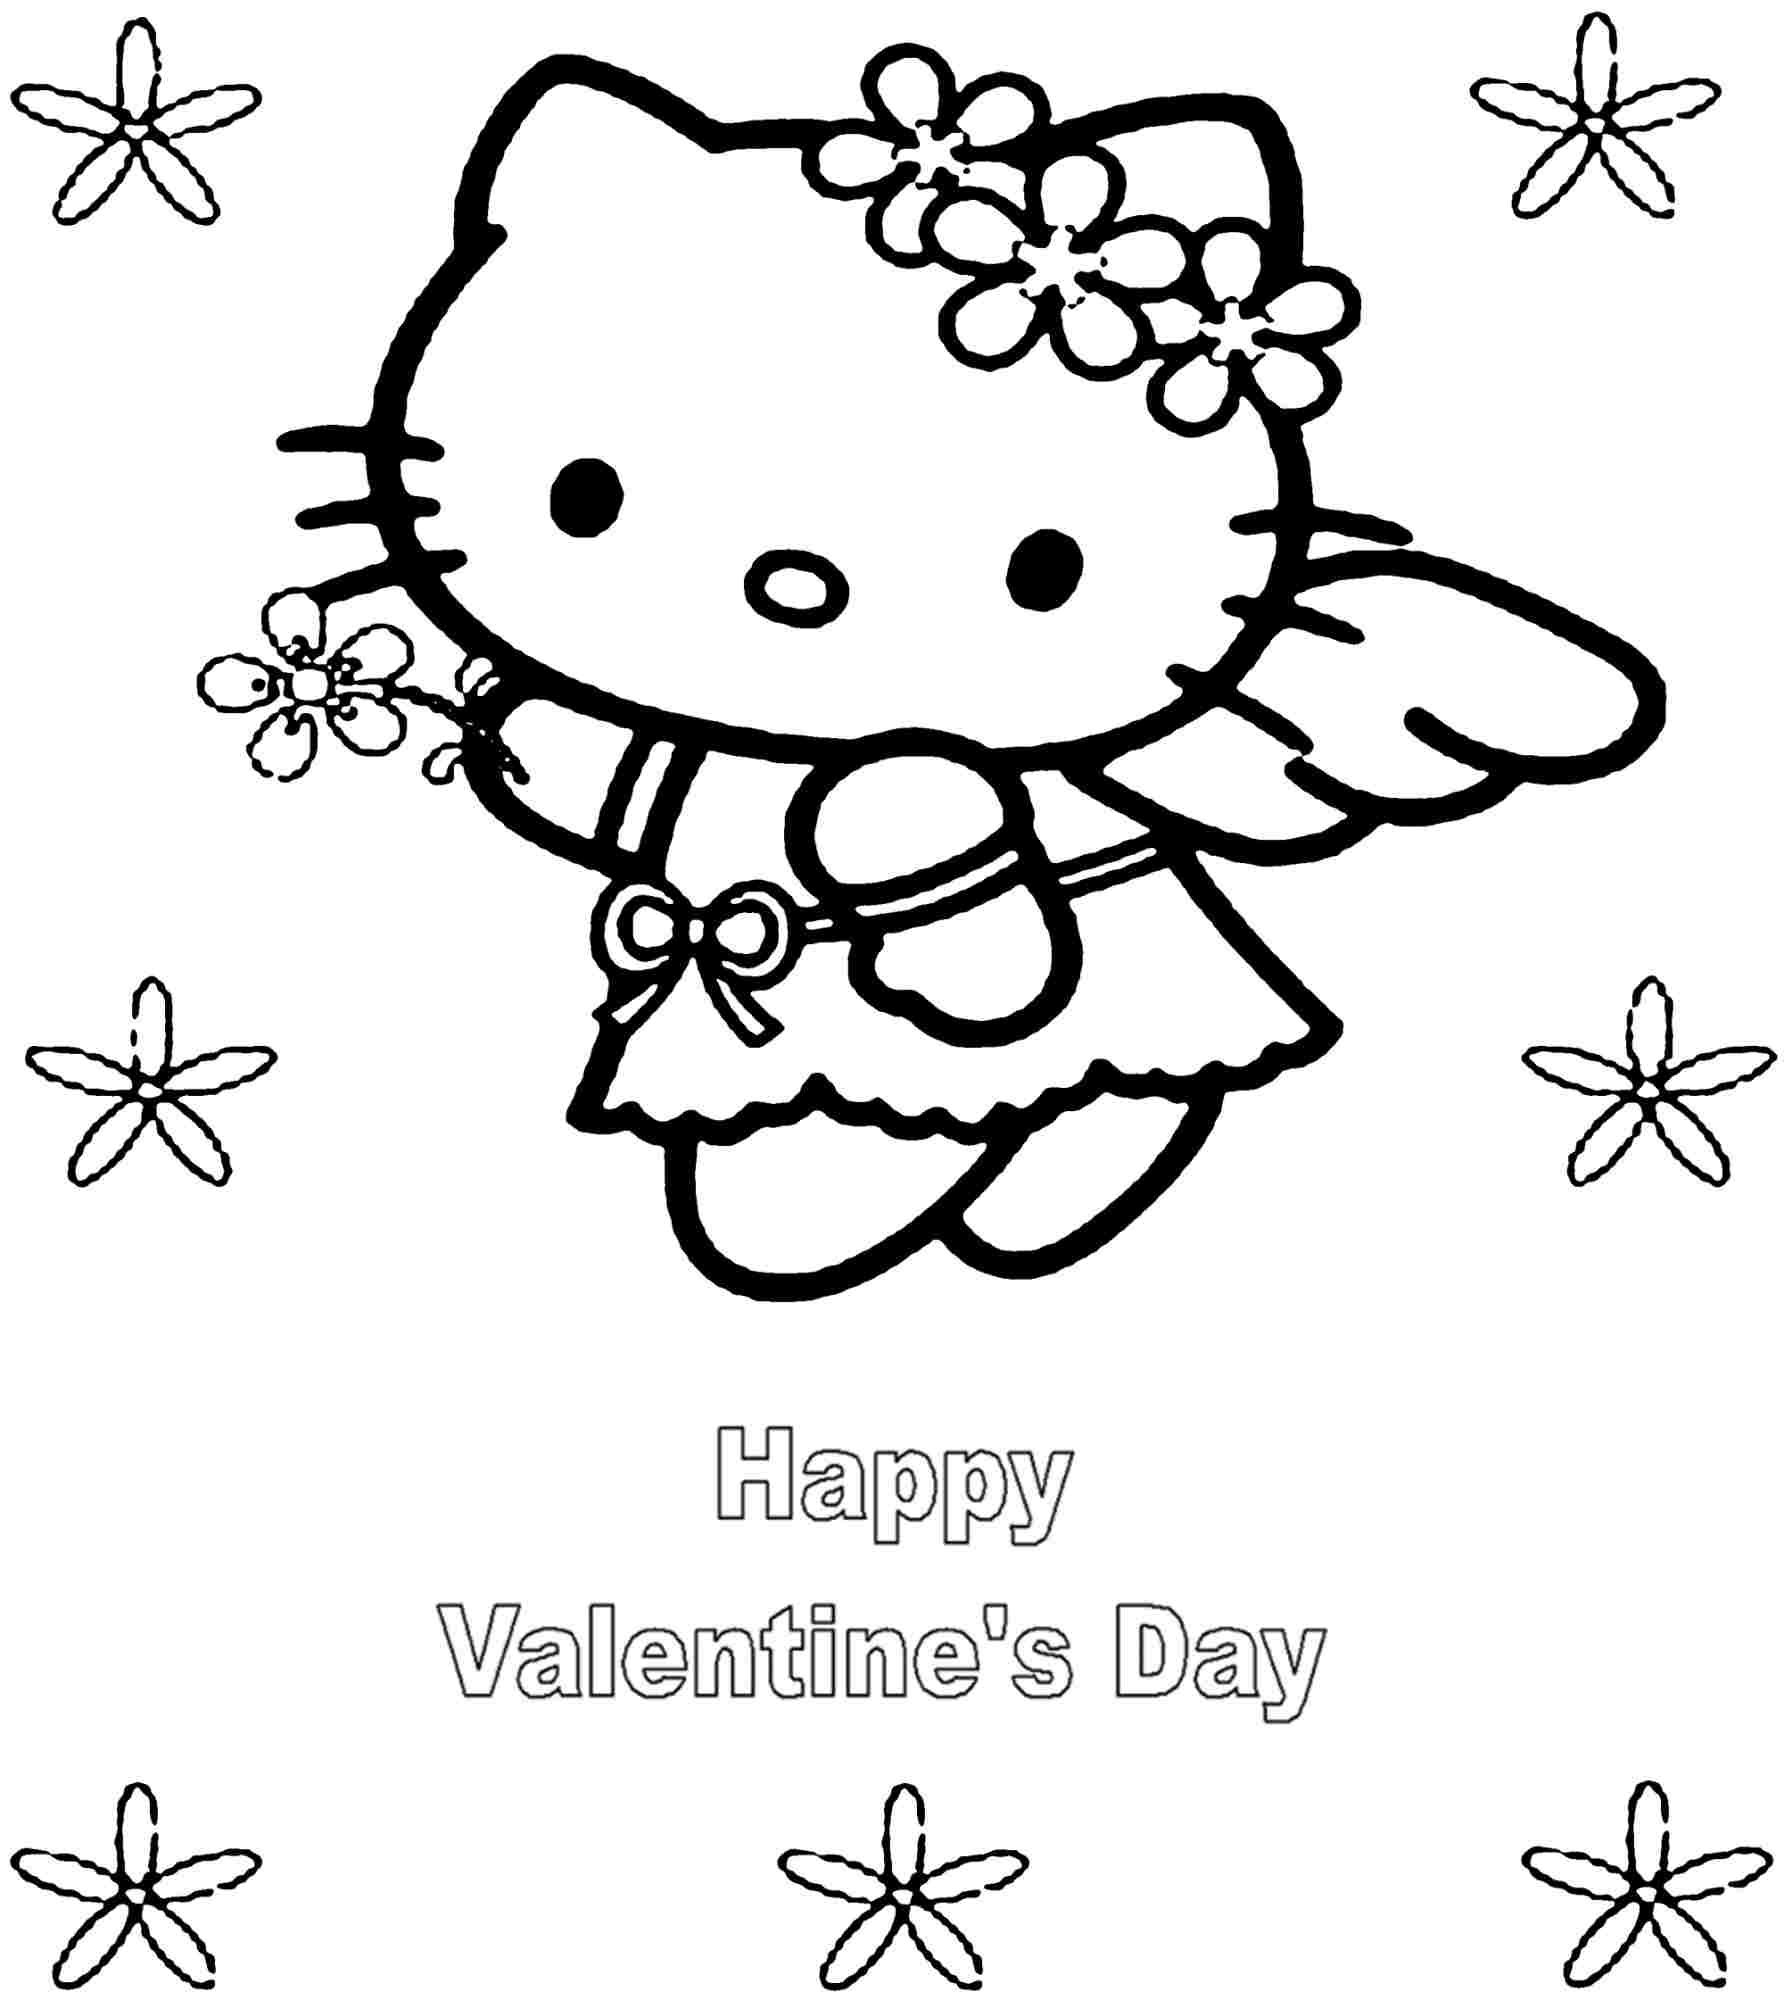 hello kitty valentines day coloring pages print hello kitty coloring pages angle hello kitty angel kitty day valentines pages coloring hello